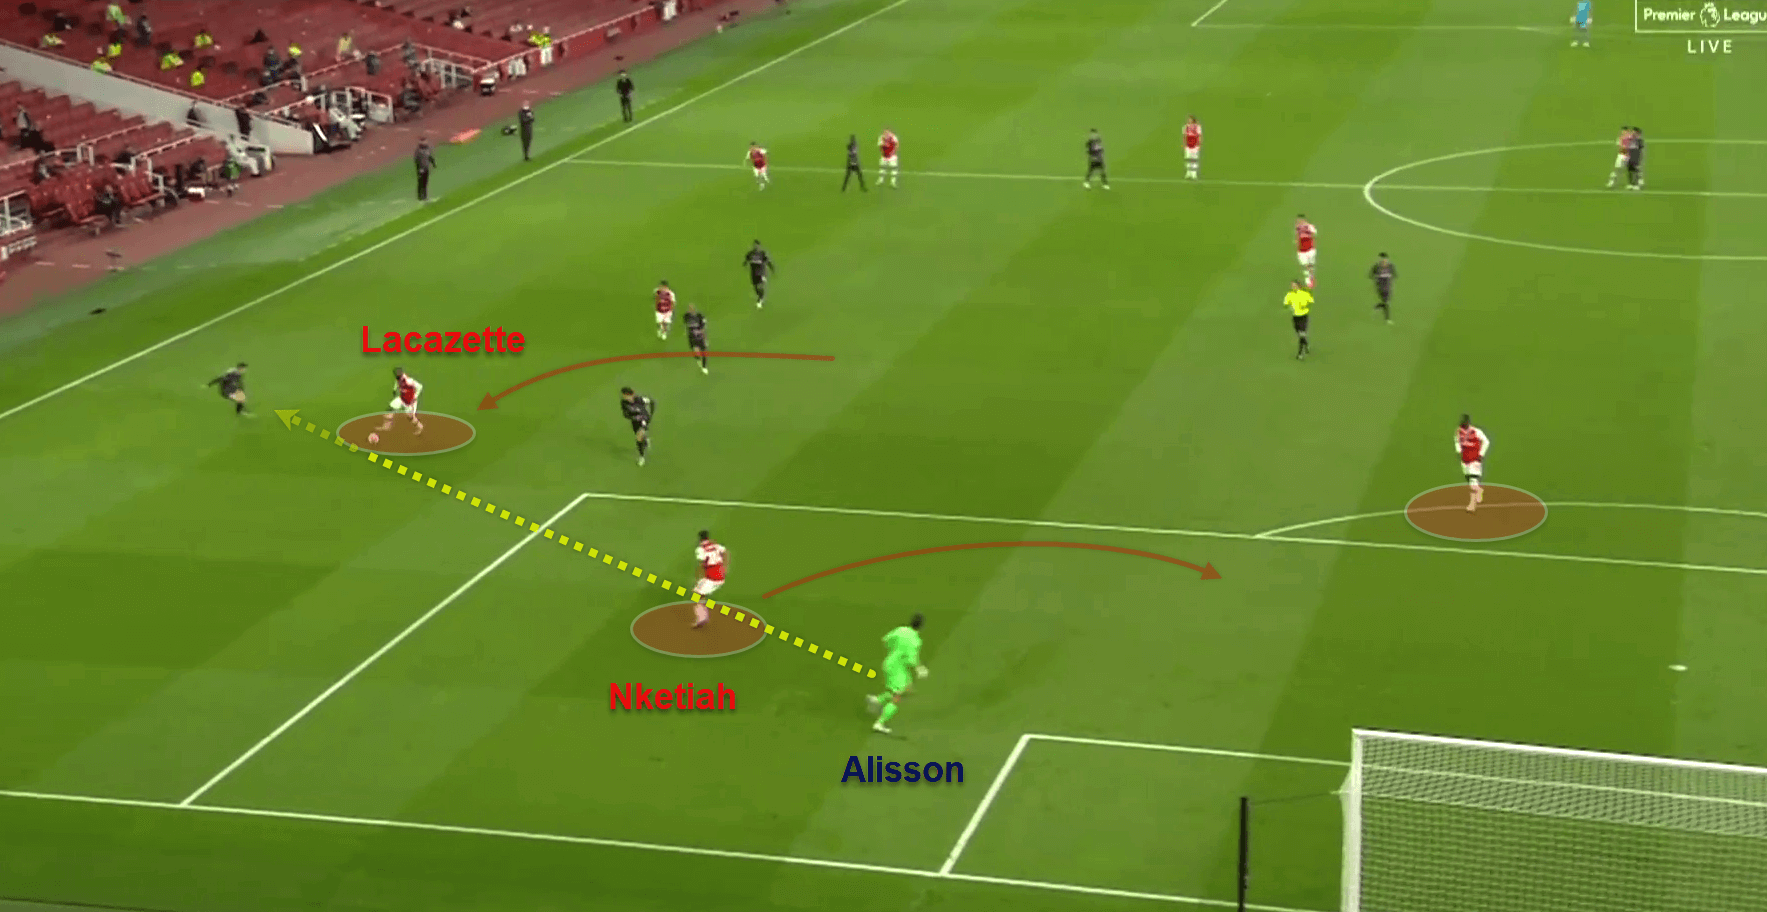 Premier League 2020/21: Liverpool v Arsenal - tactical preview tactical analysis